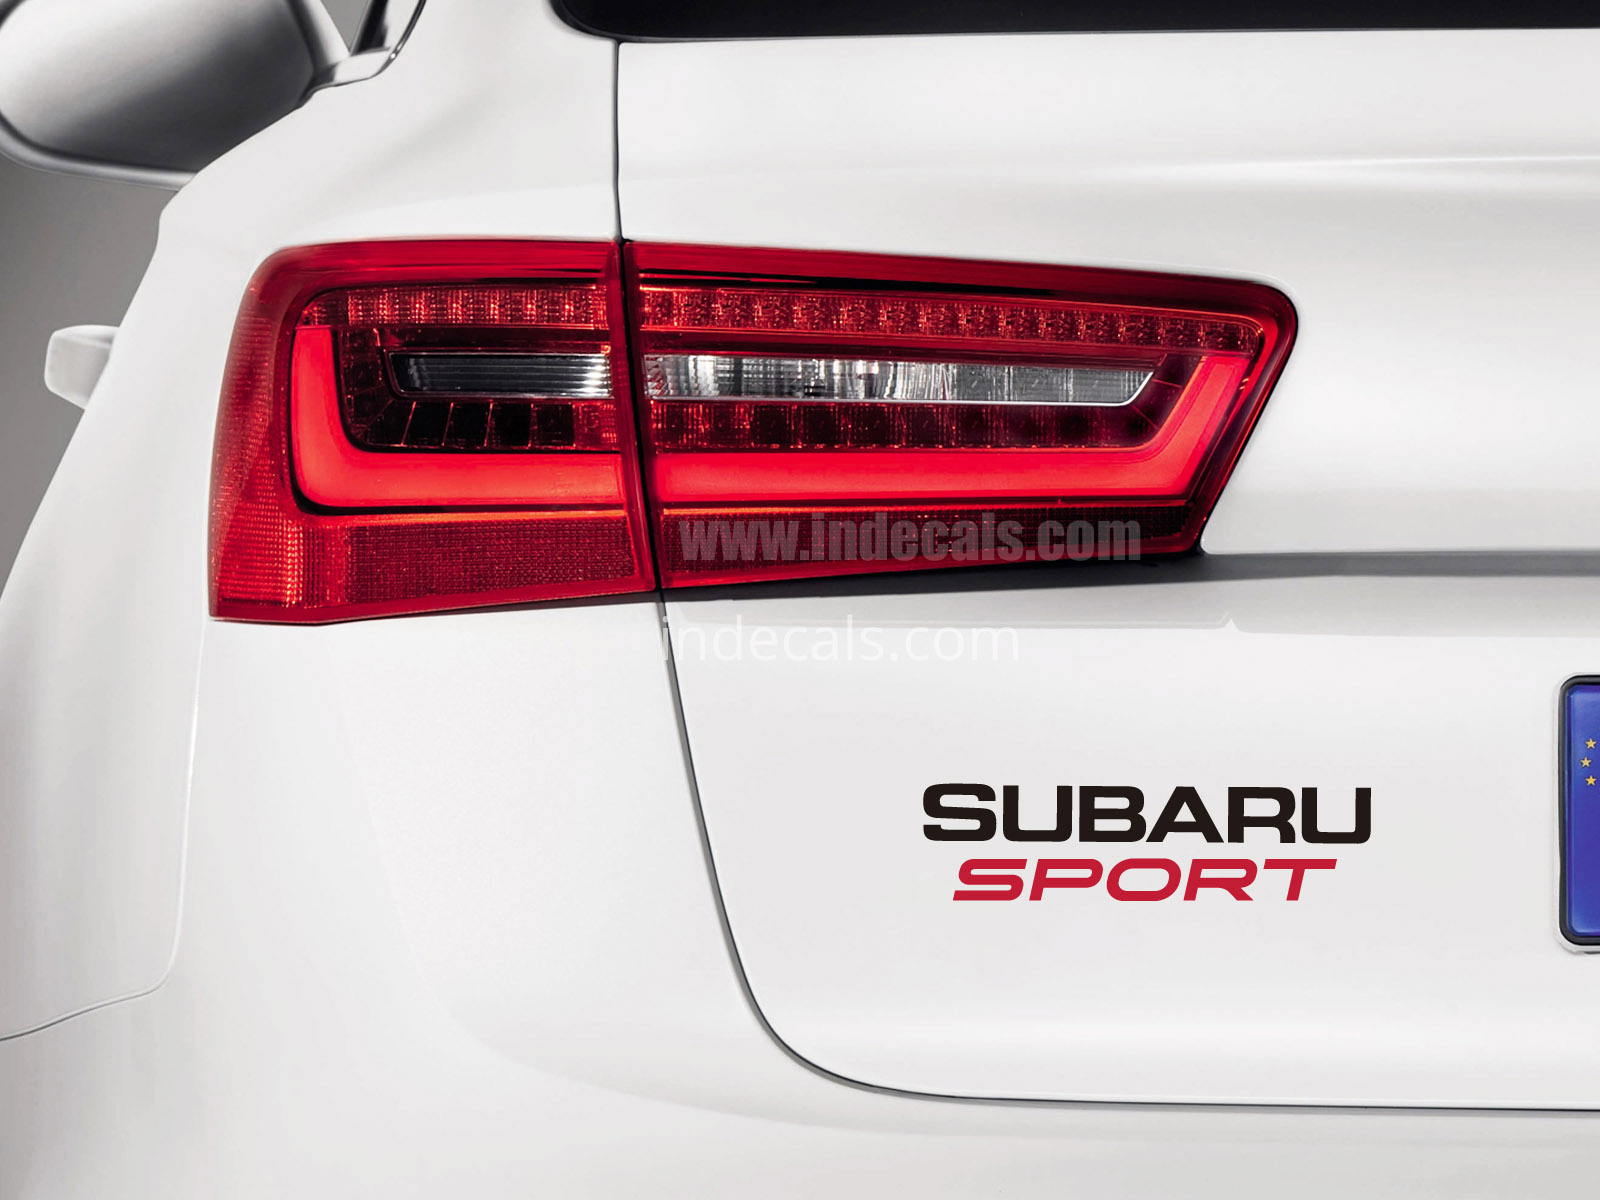 1 x Subaru Sports Sticker for Trunk - Black & Red